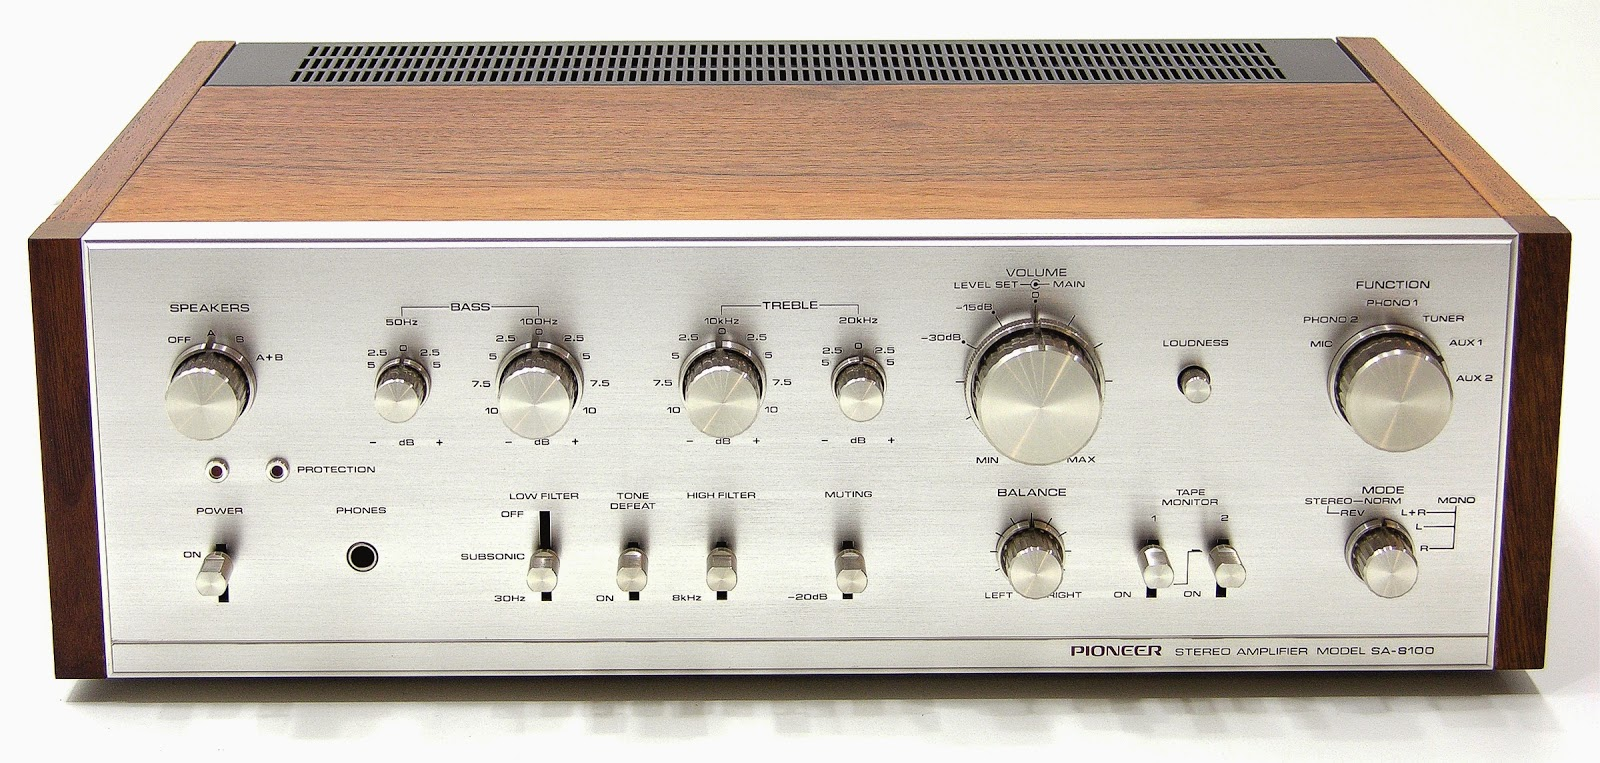 golden age of audio pioneer sa 8100 vintage stereo amplifier pioneer receiver manuals vsx-d457 pioneer receiver manual download